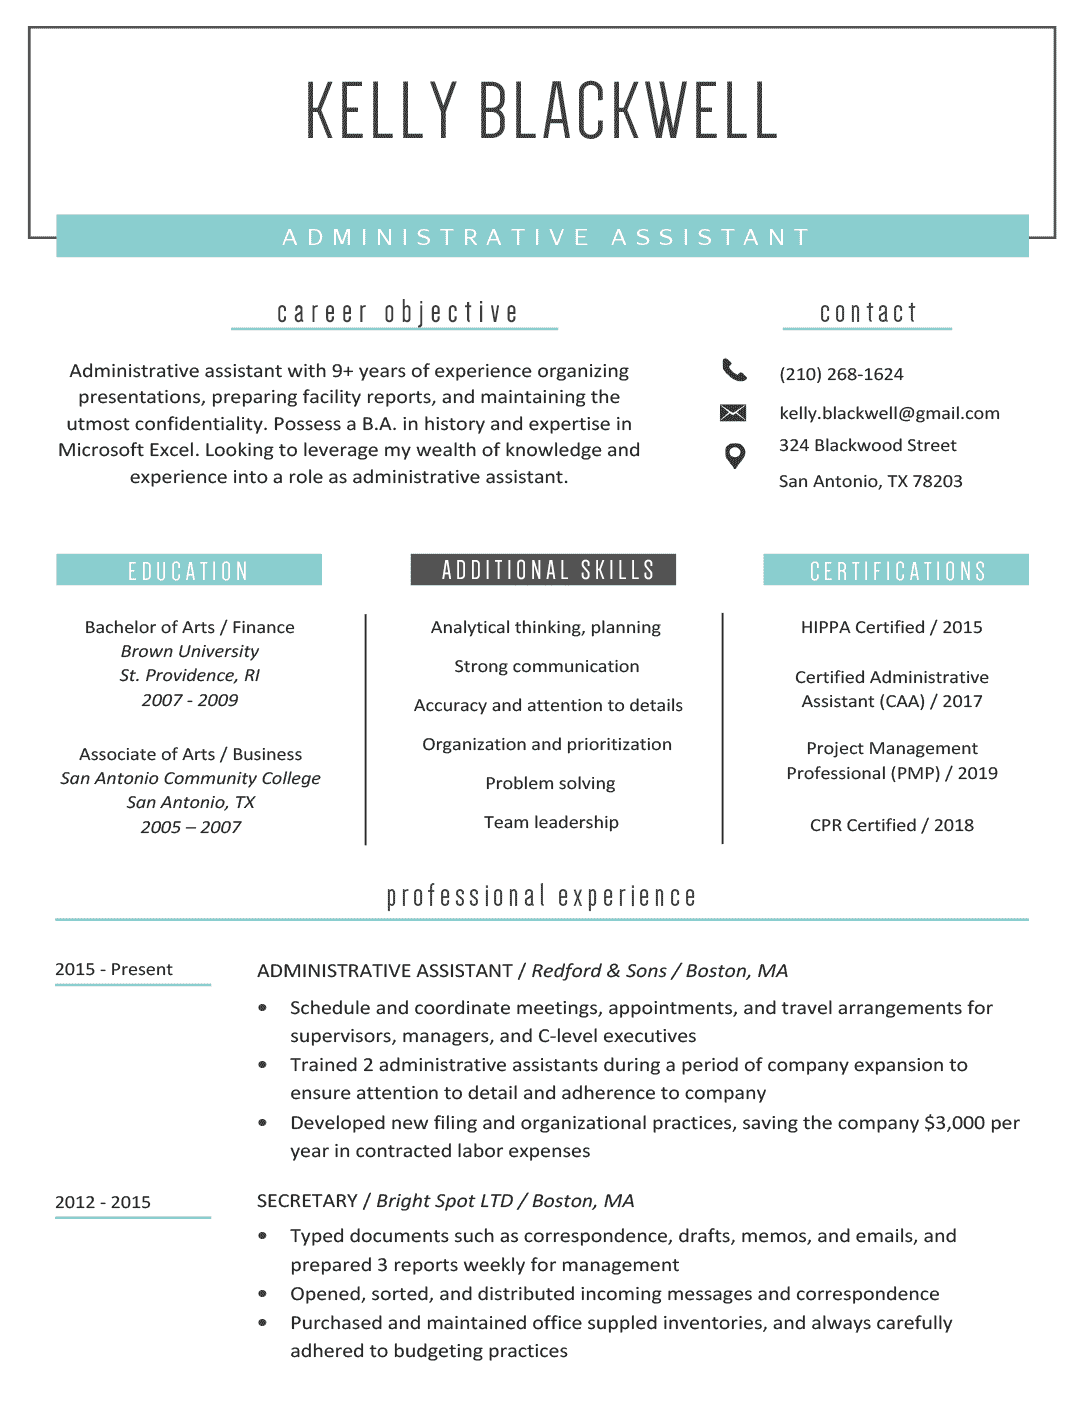 Resume Builder Resume builder, Resume, Business cards layout